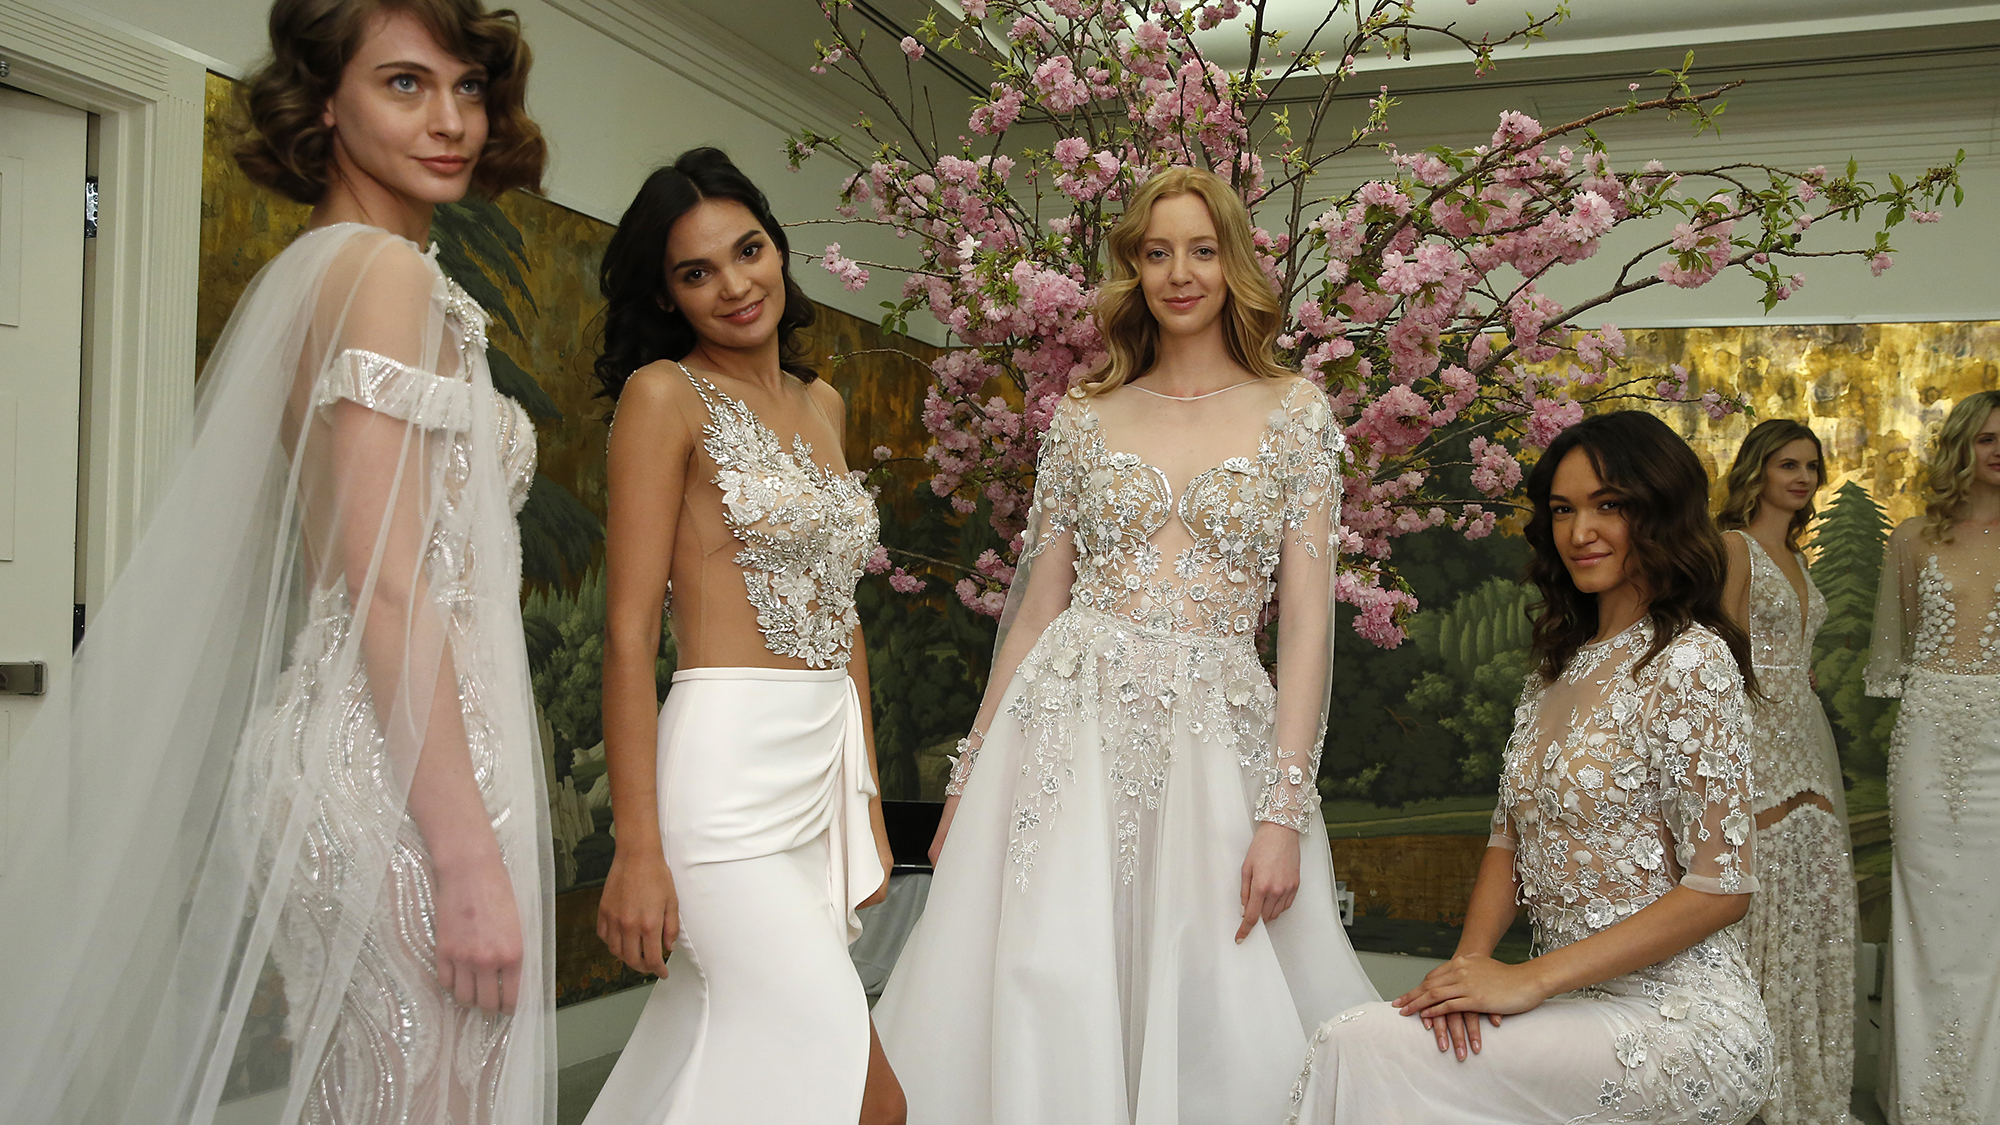 The Best Lace Wedding Dresses To Feel Like Kate & Pippa Middleton